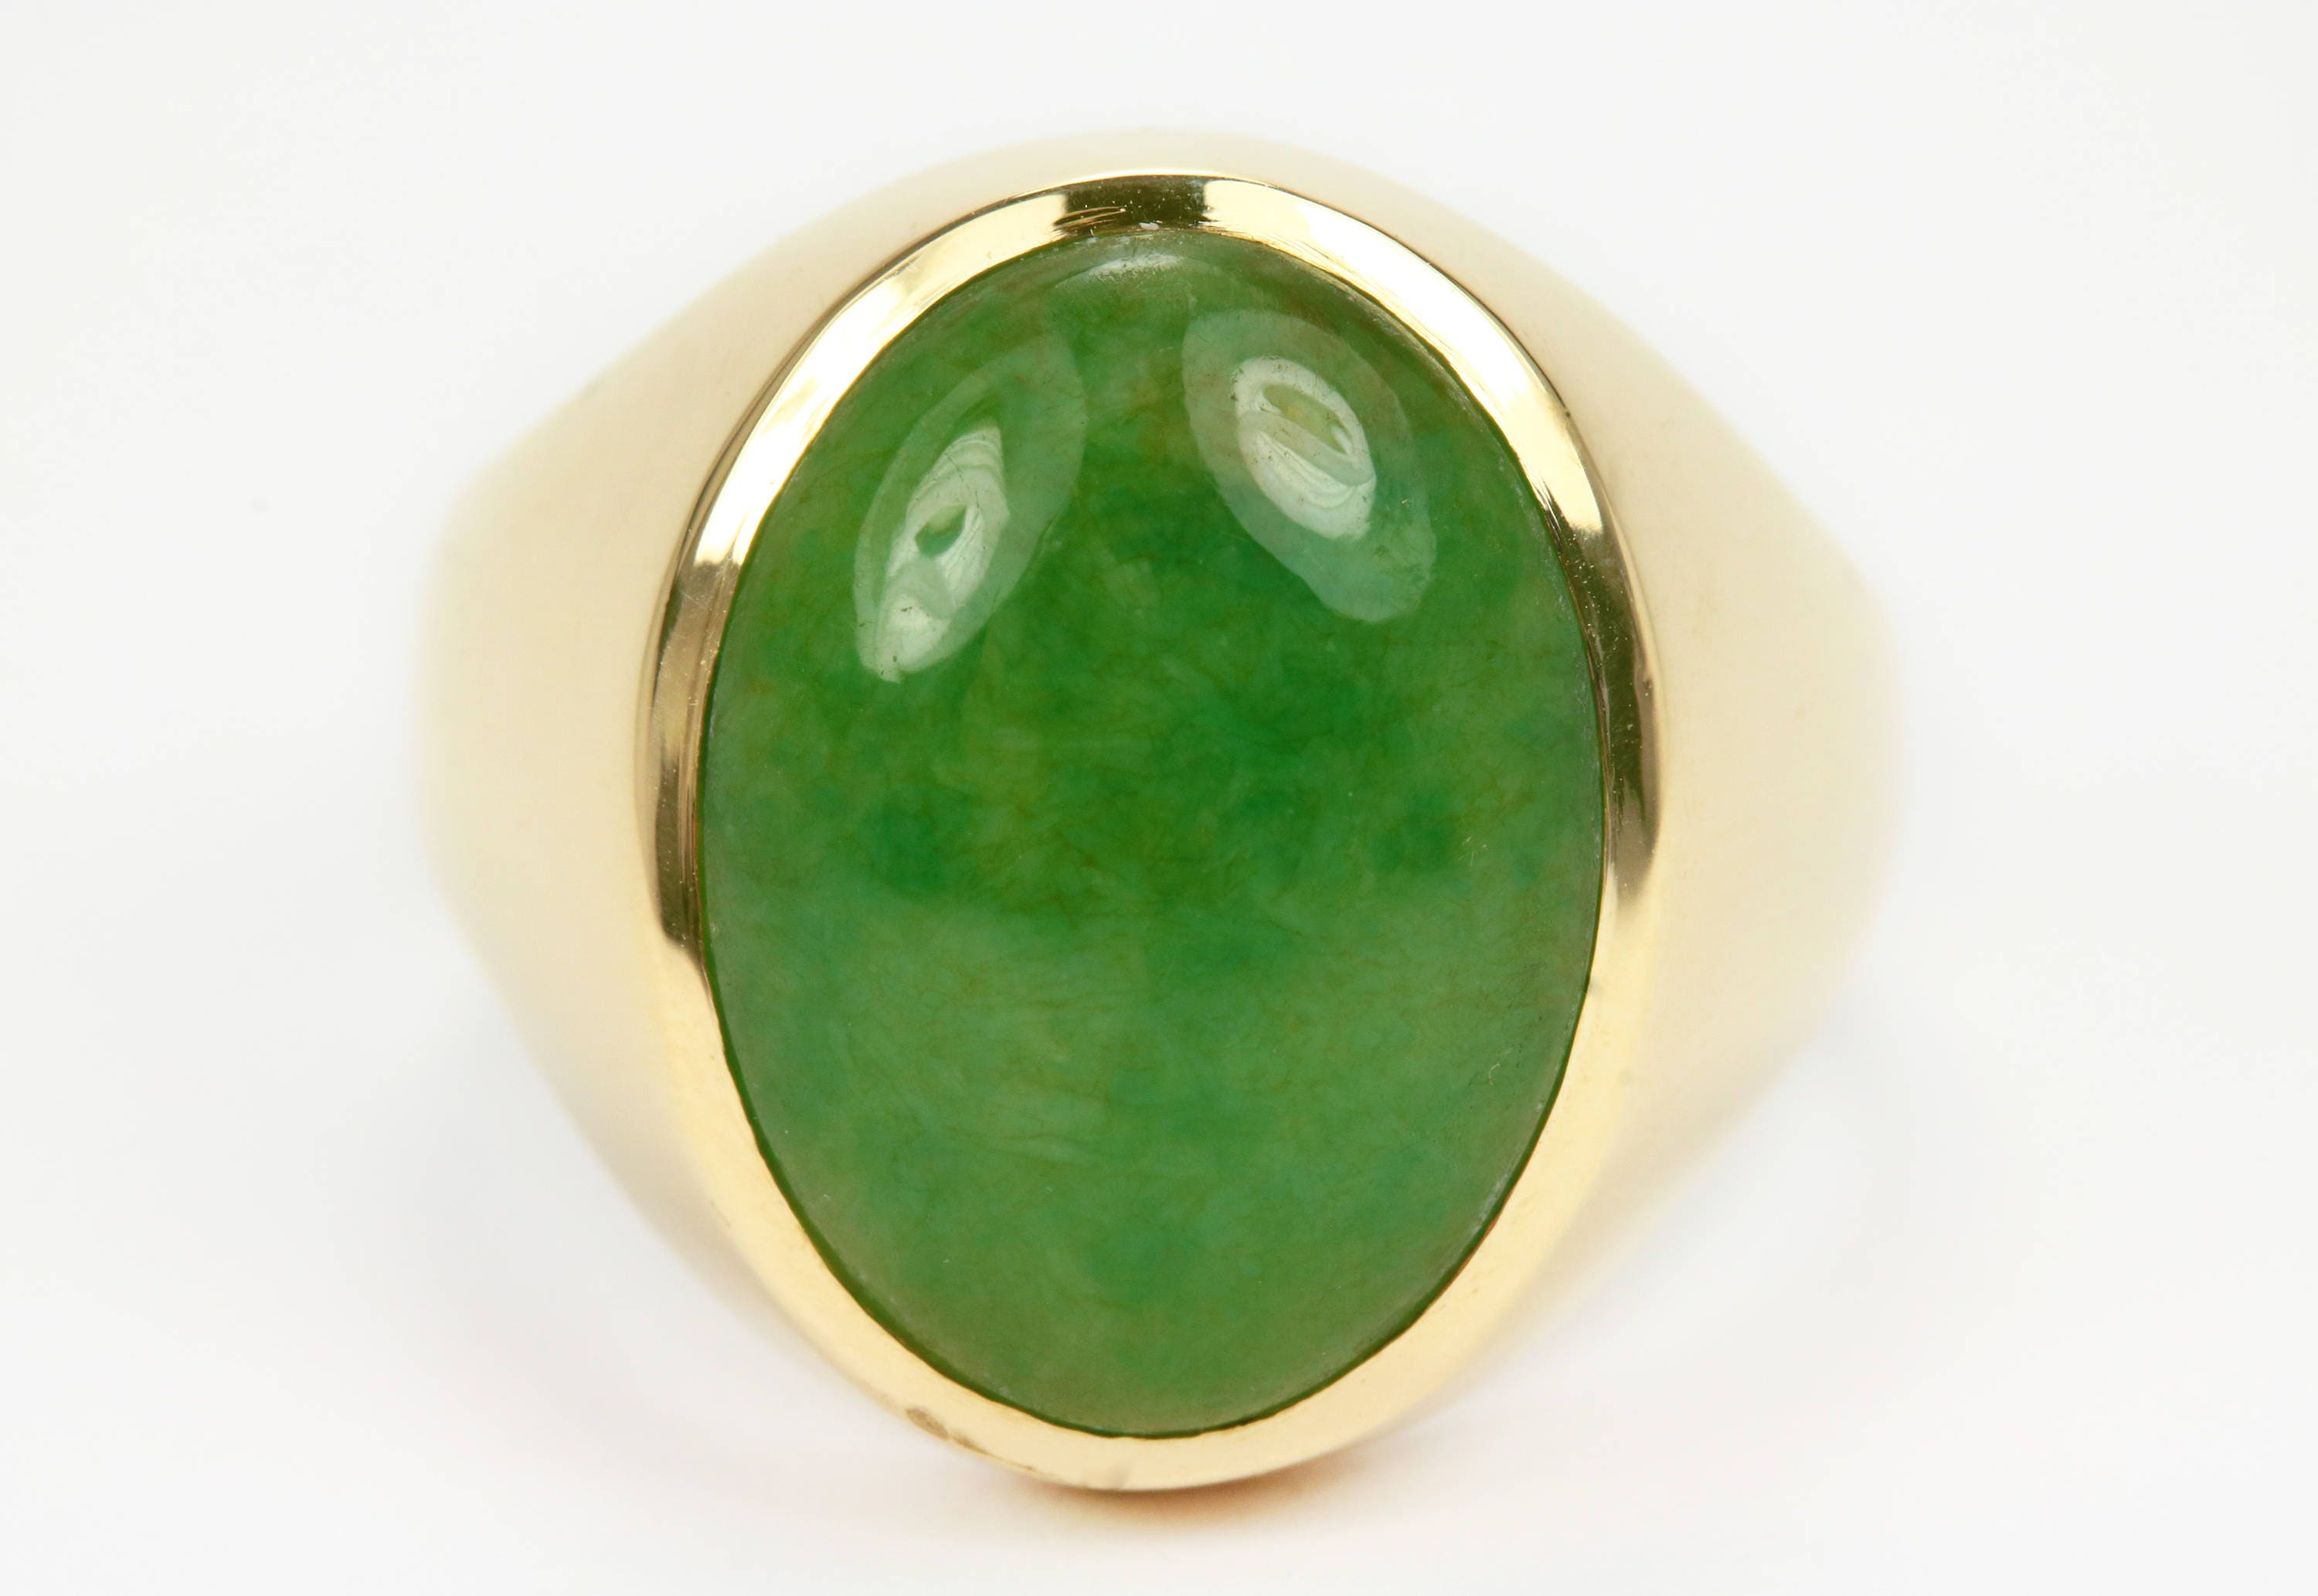 moda emerald ring operandi katz of a loading large one oval kind by green martin